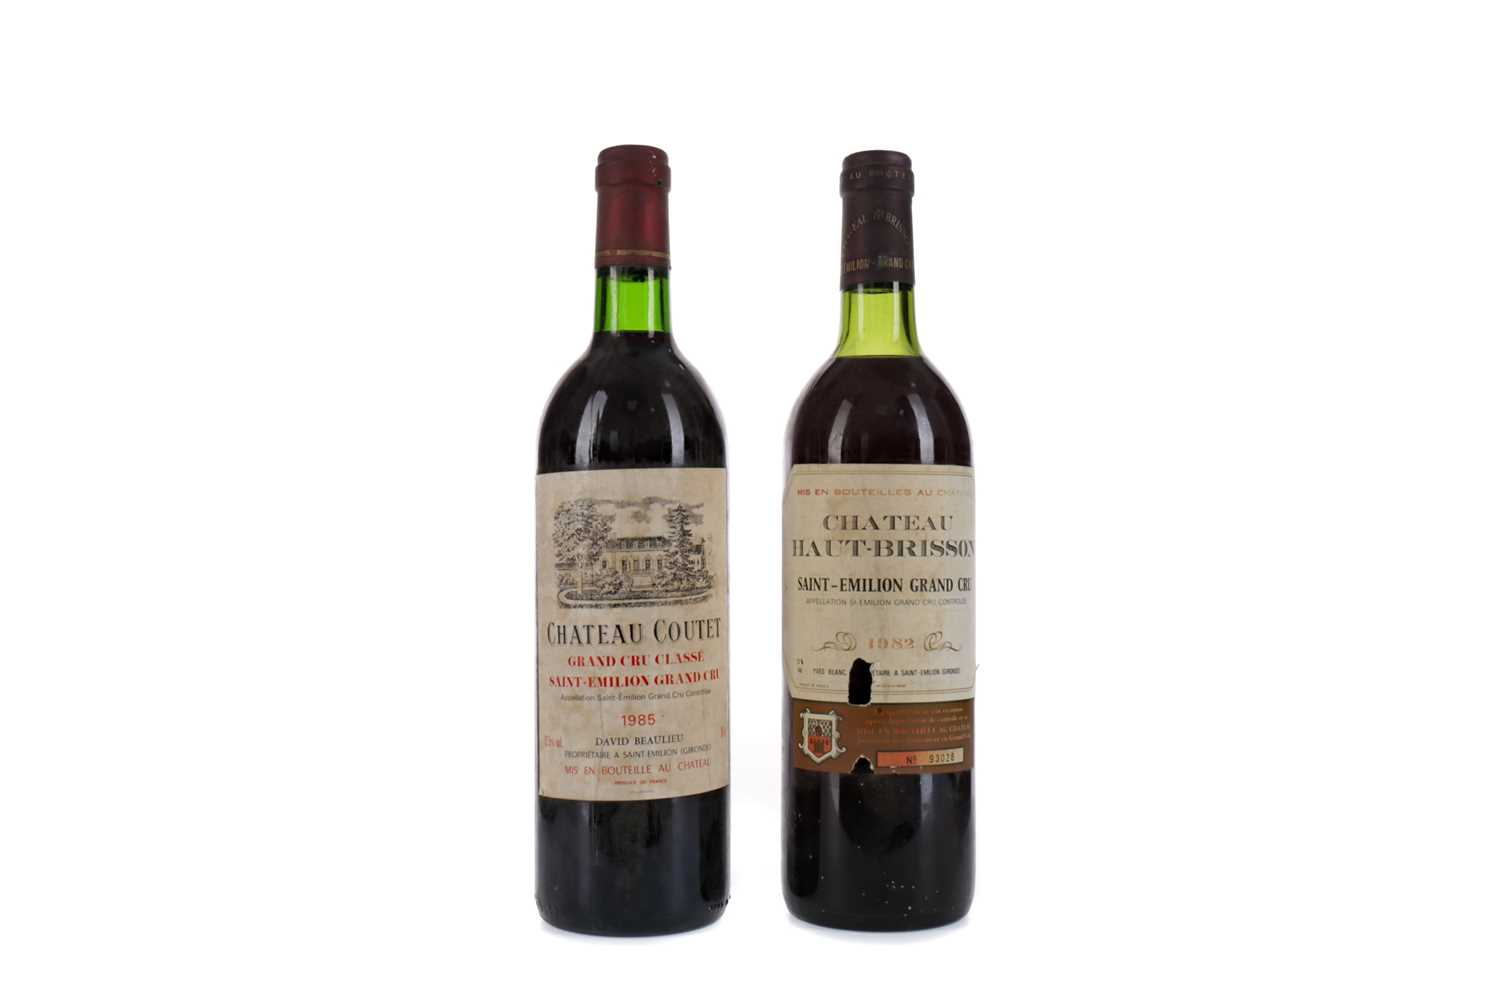 Lot 85 - CHATEAU COUTET 1985 AND CHATEAU HAUT BRISSON 1982